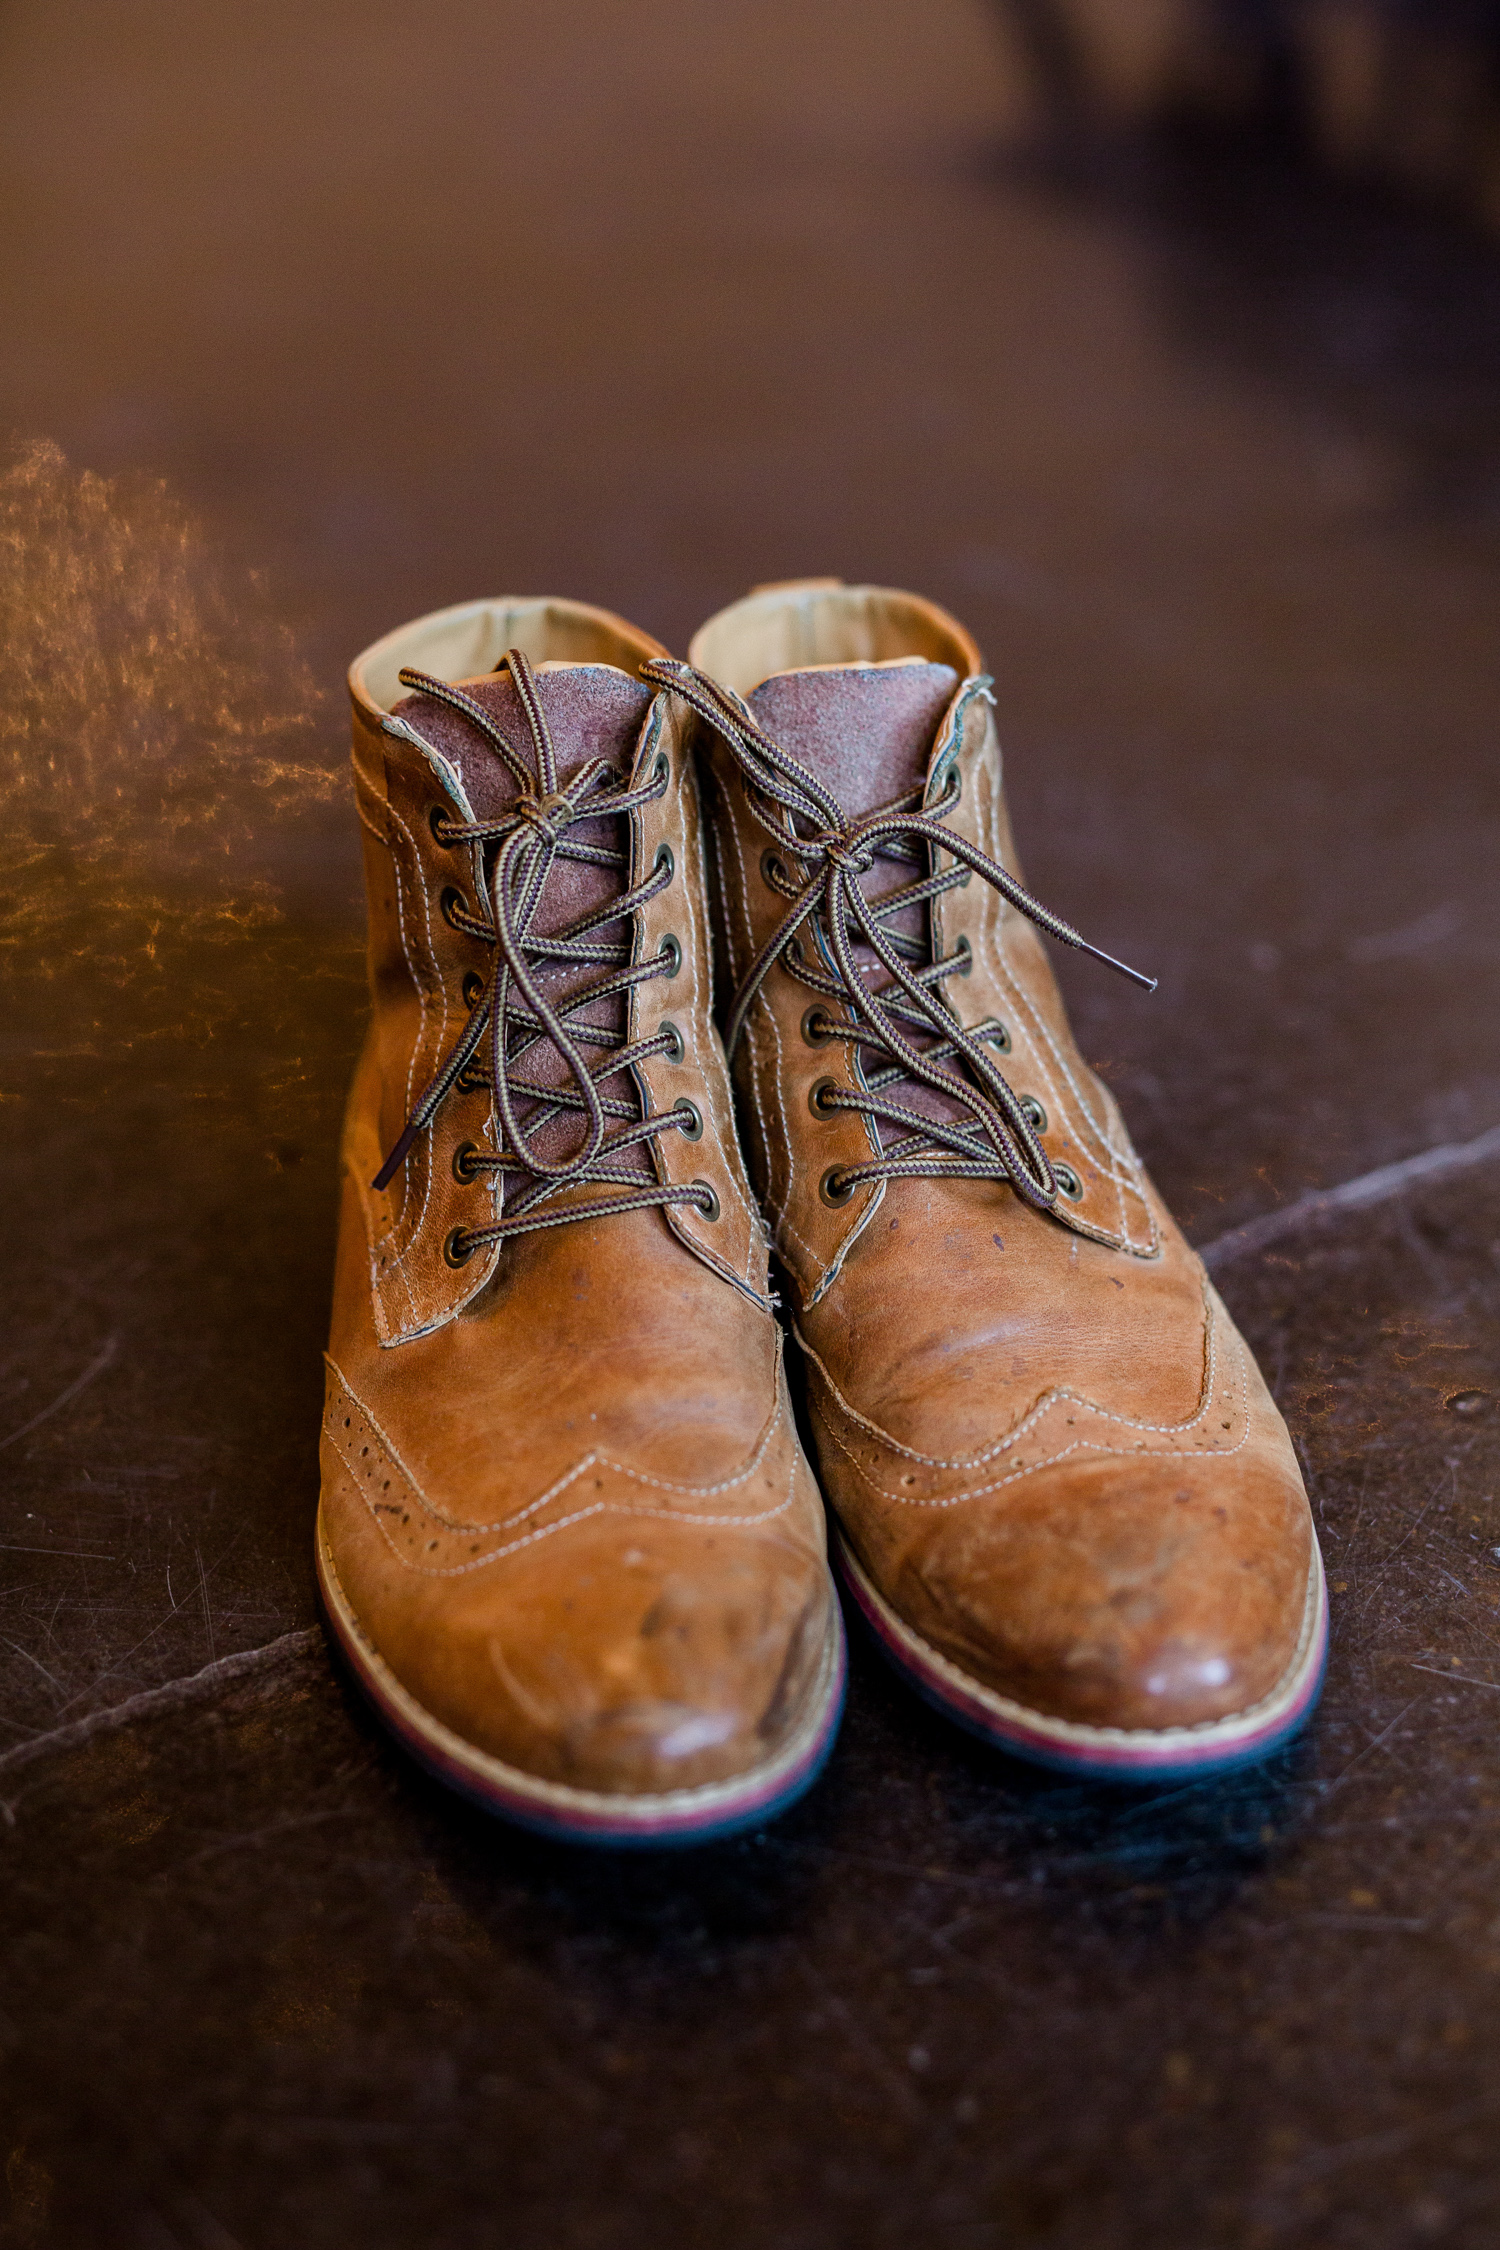 Downtown Knoxville Wedding Venue // Central Avenue Reception // Groom's Leather Boots